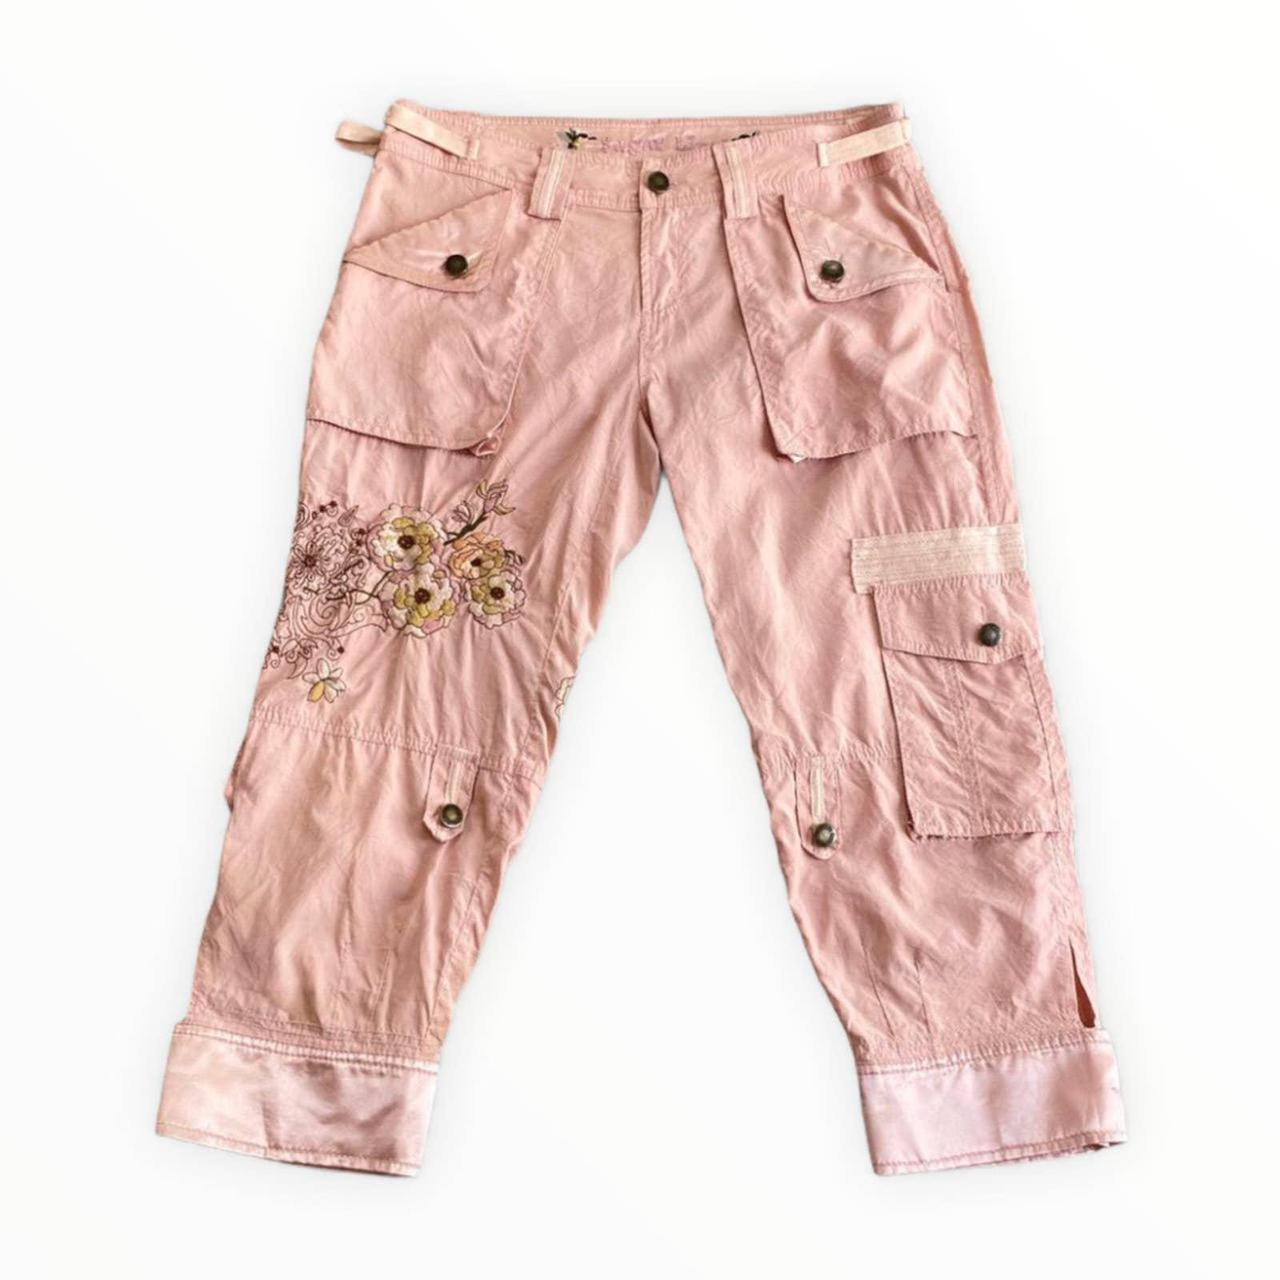 Product Image 1 - Vintage y2k Girly Pink Embroidered